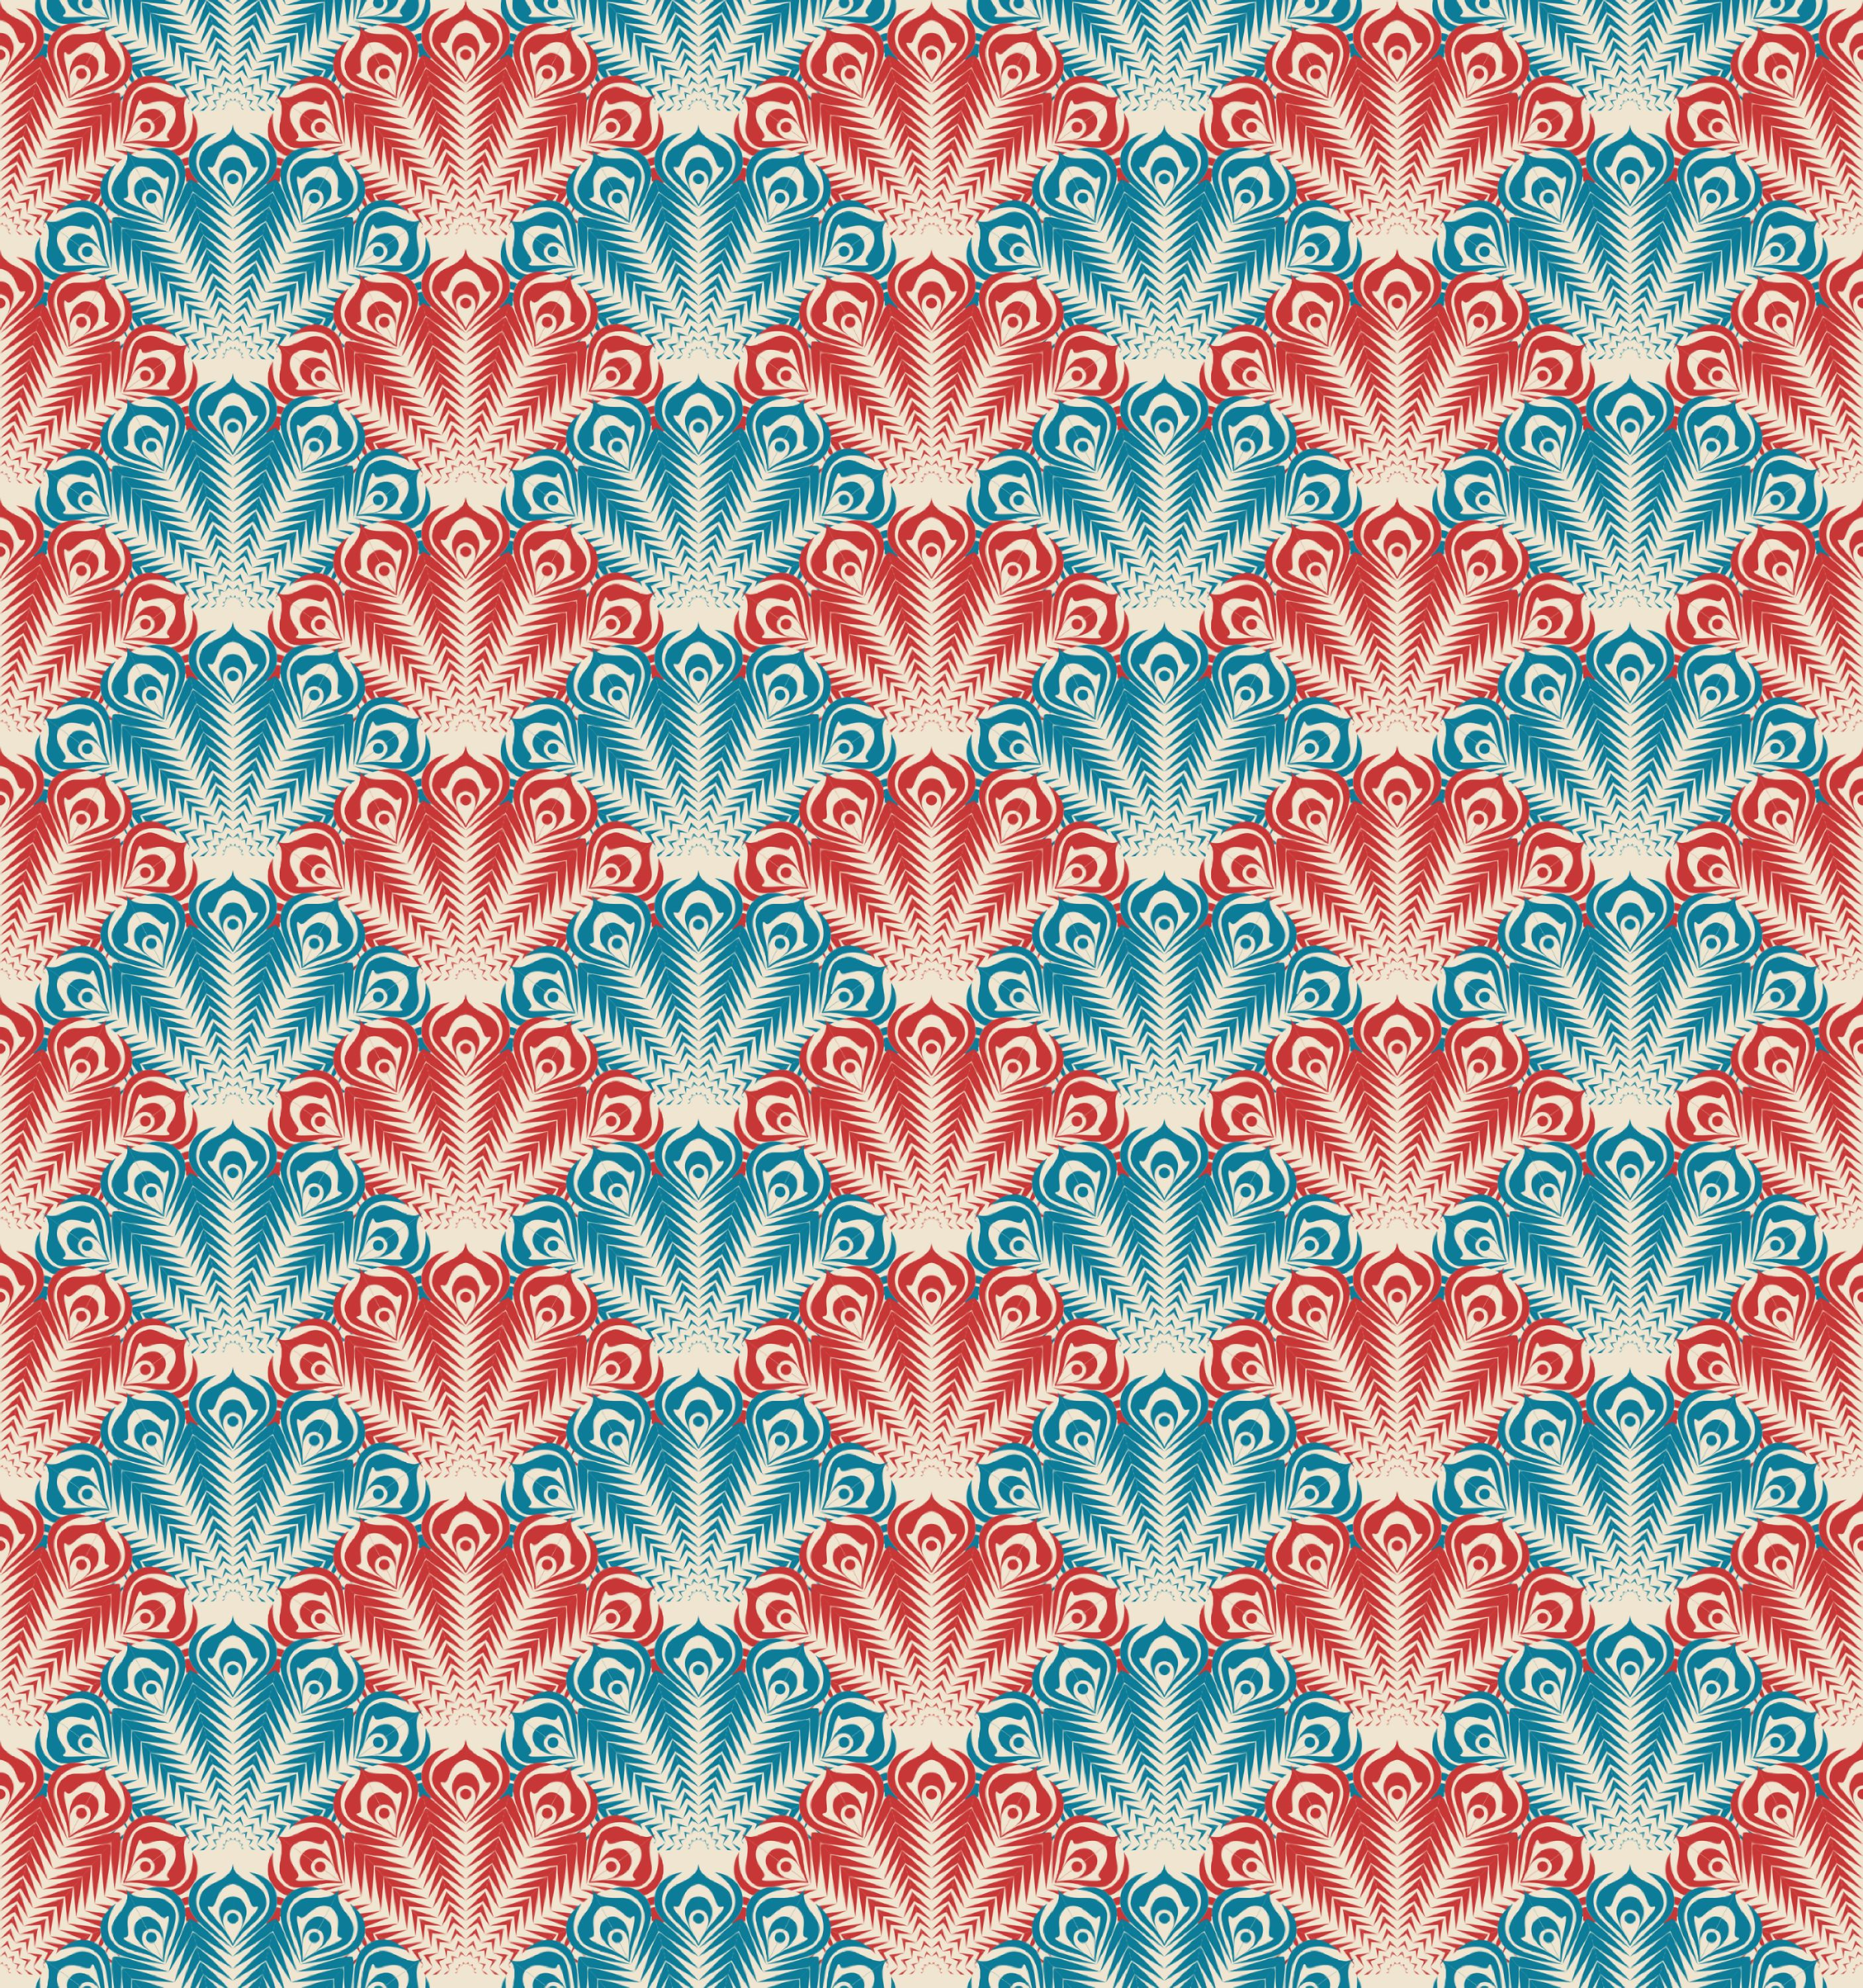 55243 download wallpaper Feather, Patterns, Texture, Textures, Vintage, Peacock, Retro screensavers and pictures for free